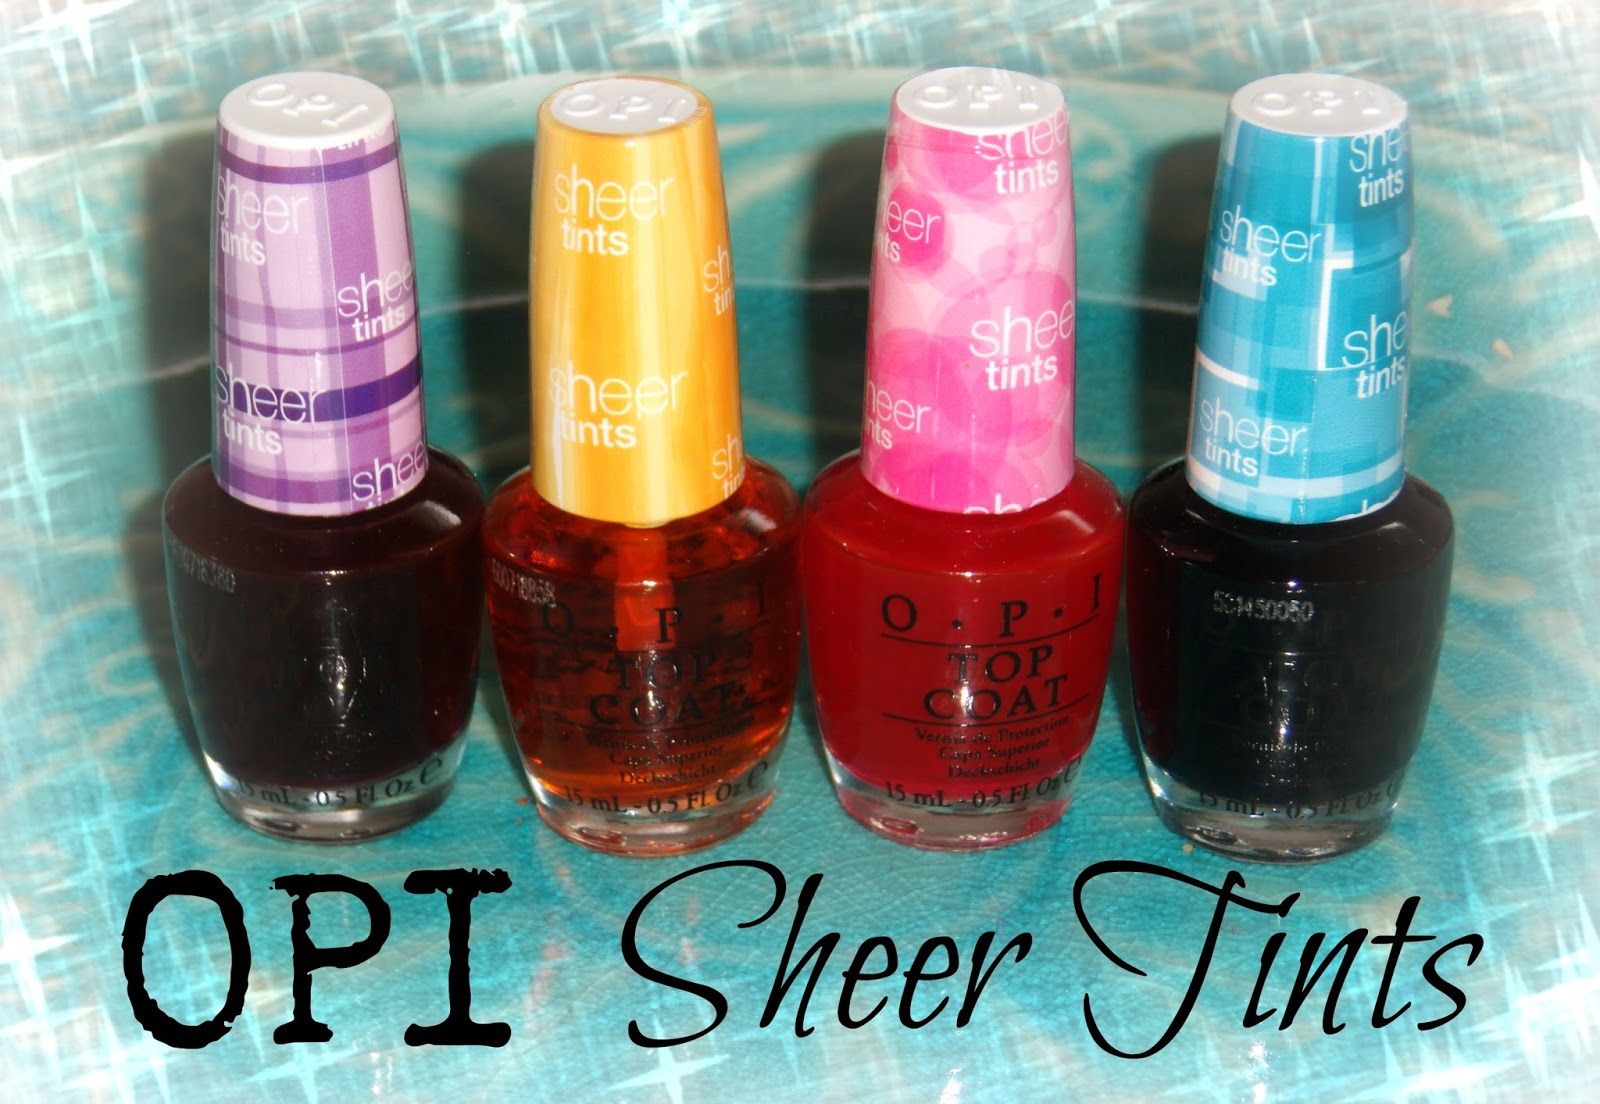 New From Opi Here Is Their Sheer Tints Collection Of Top Coats These 4 Polishes Give A Wash Color Either On Own Or Over Another Polish